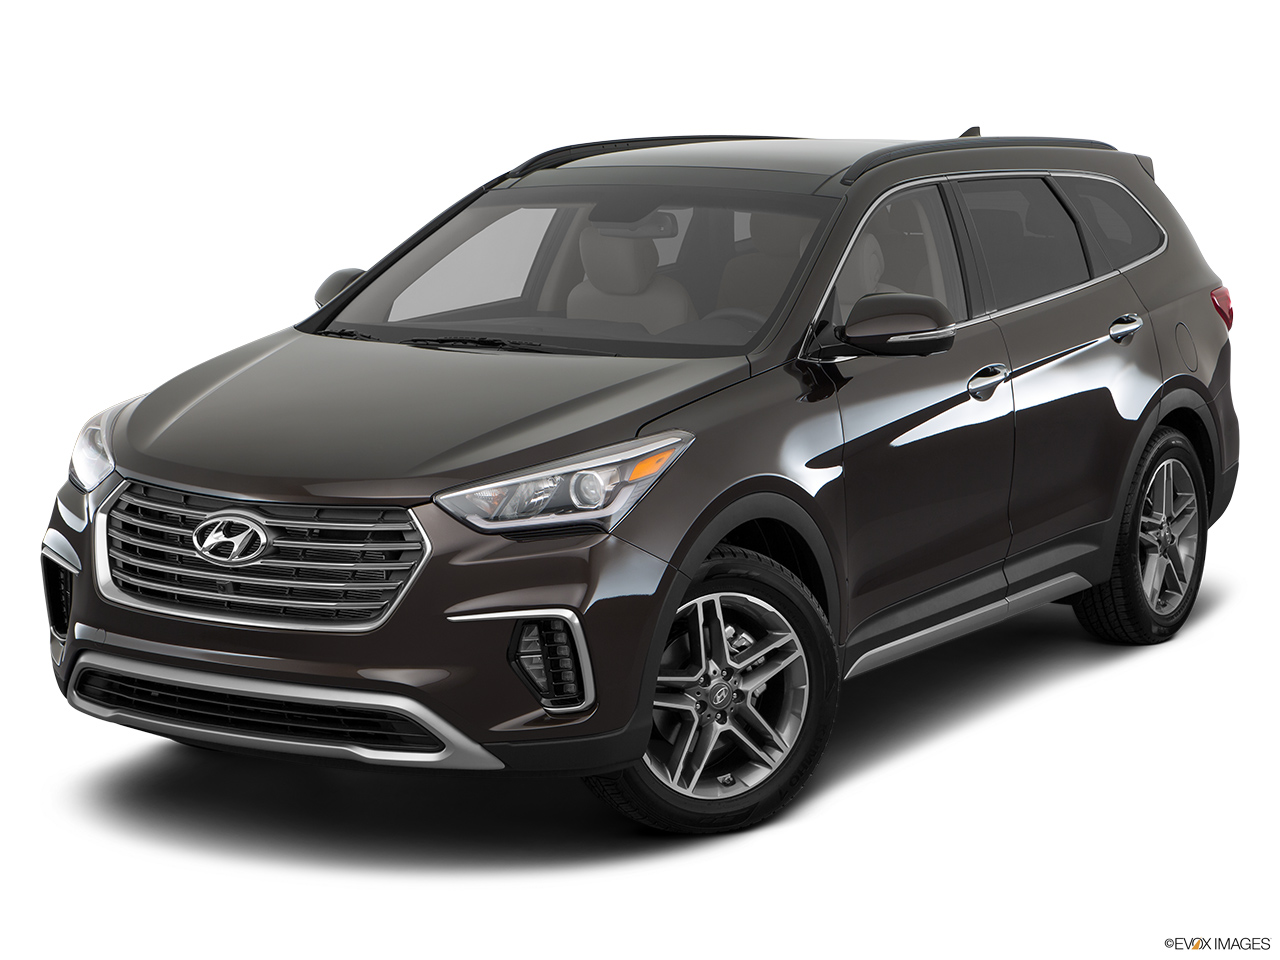 hyundai grand santa fe 2017 3 3l awd top in uae new car prices specs reviews photos. Black Bedroom Furniture Sets. Home Design Ideas